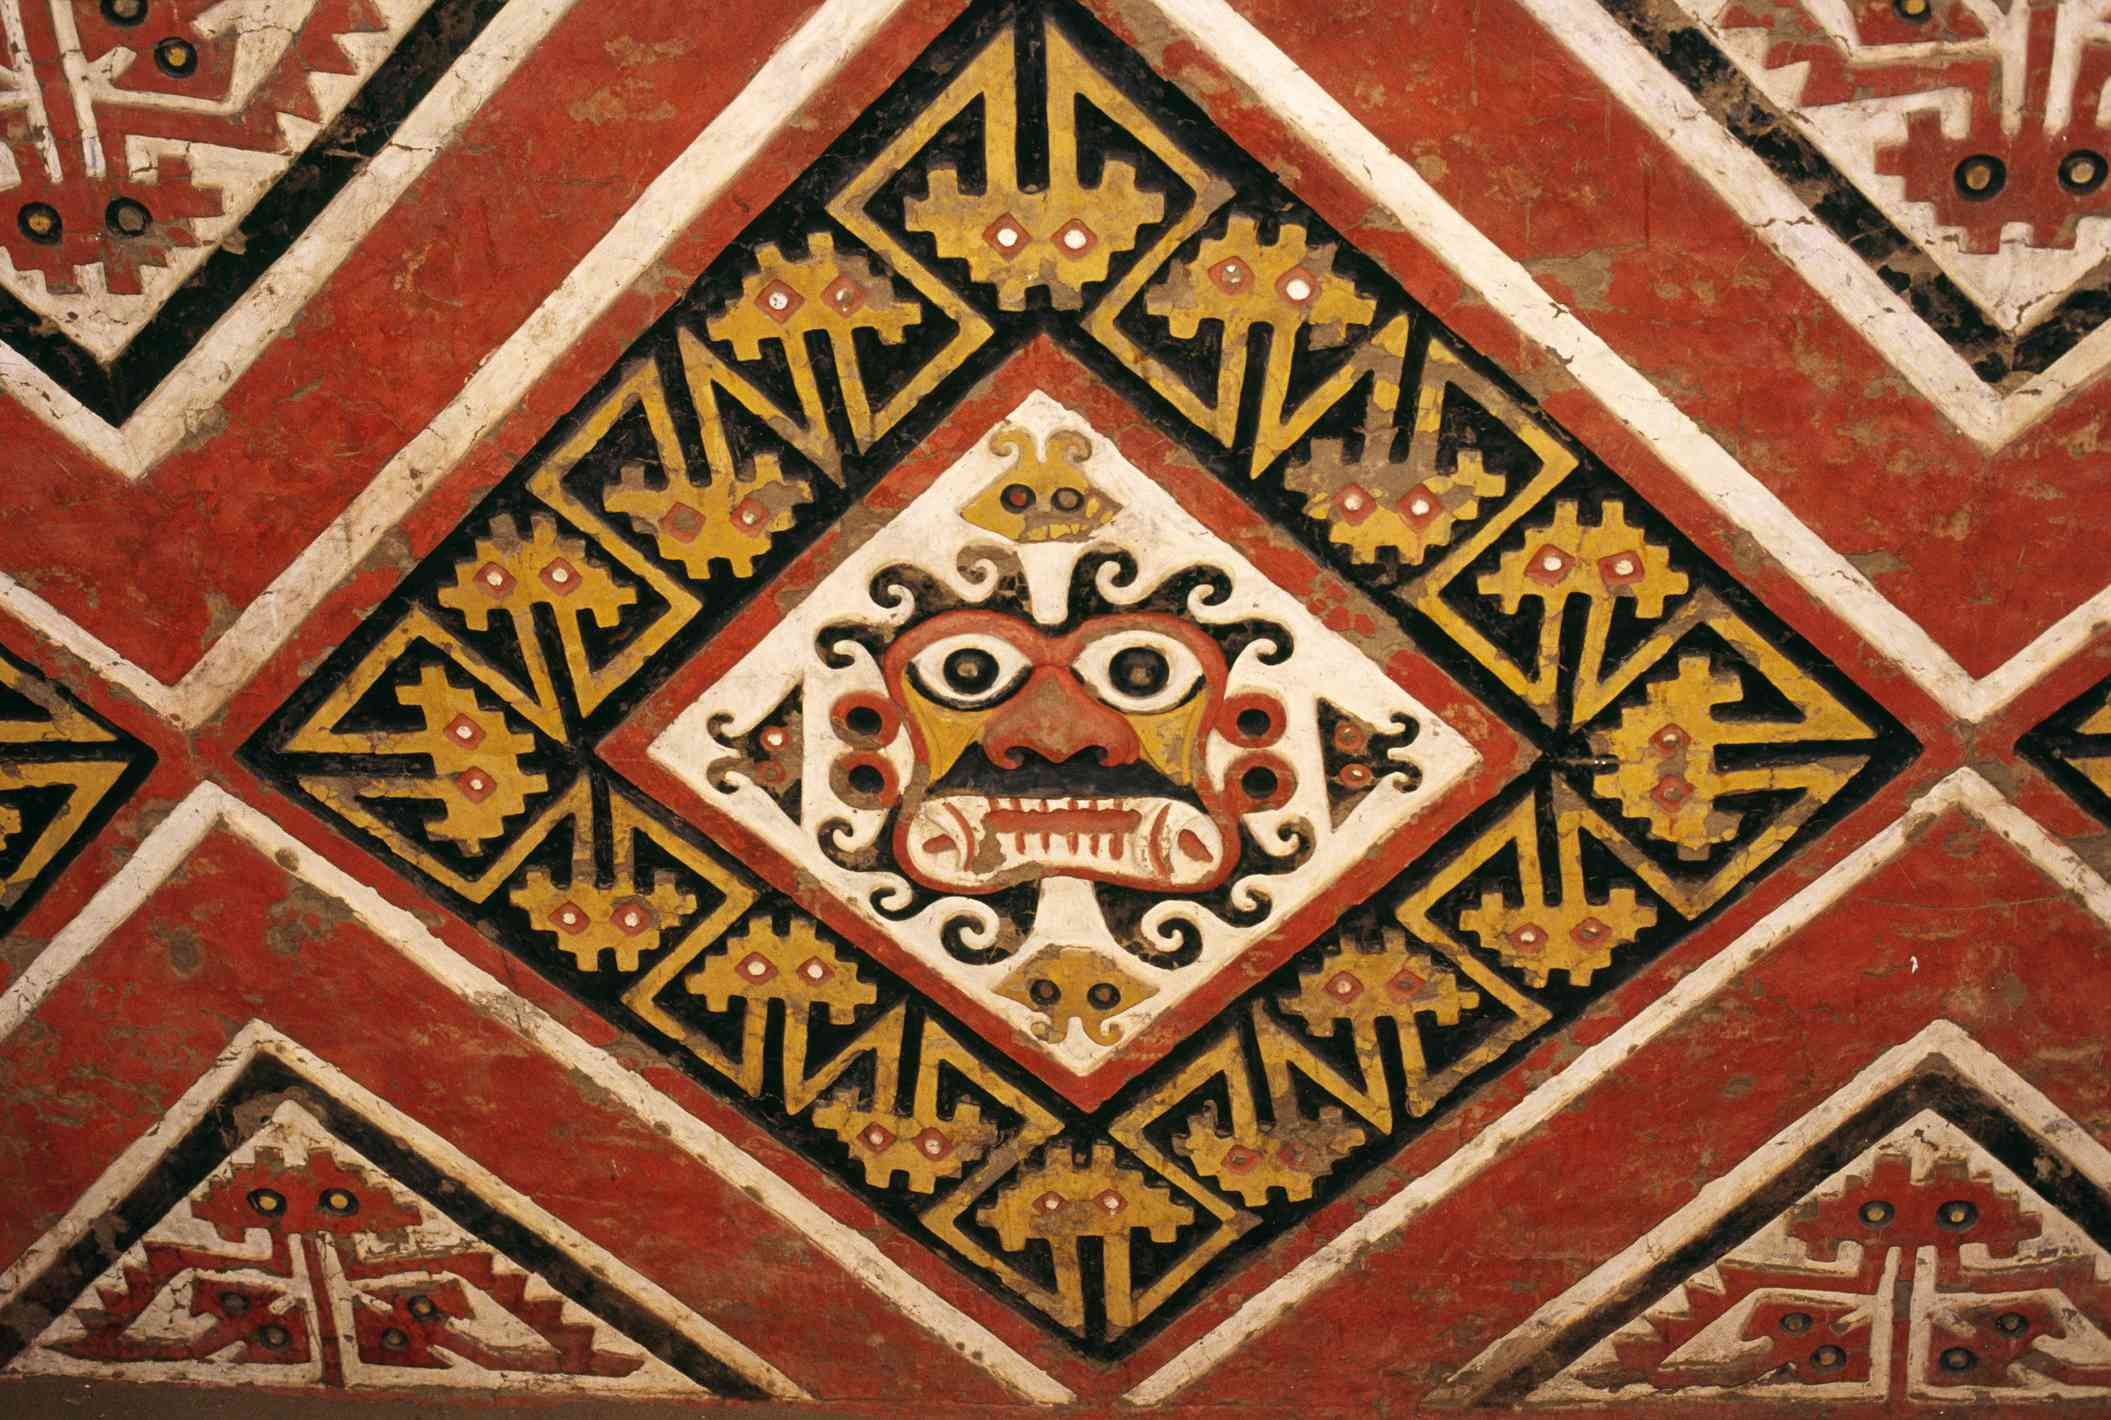 Polychrome frieze representing the face of the Moche god Aipaec